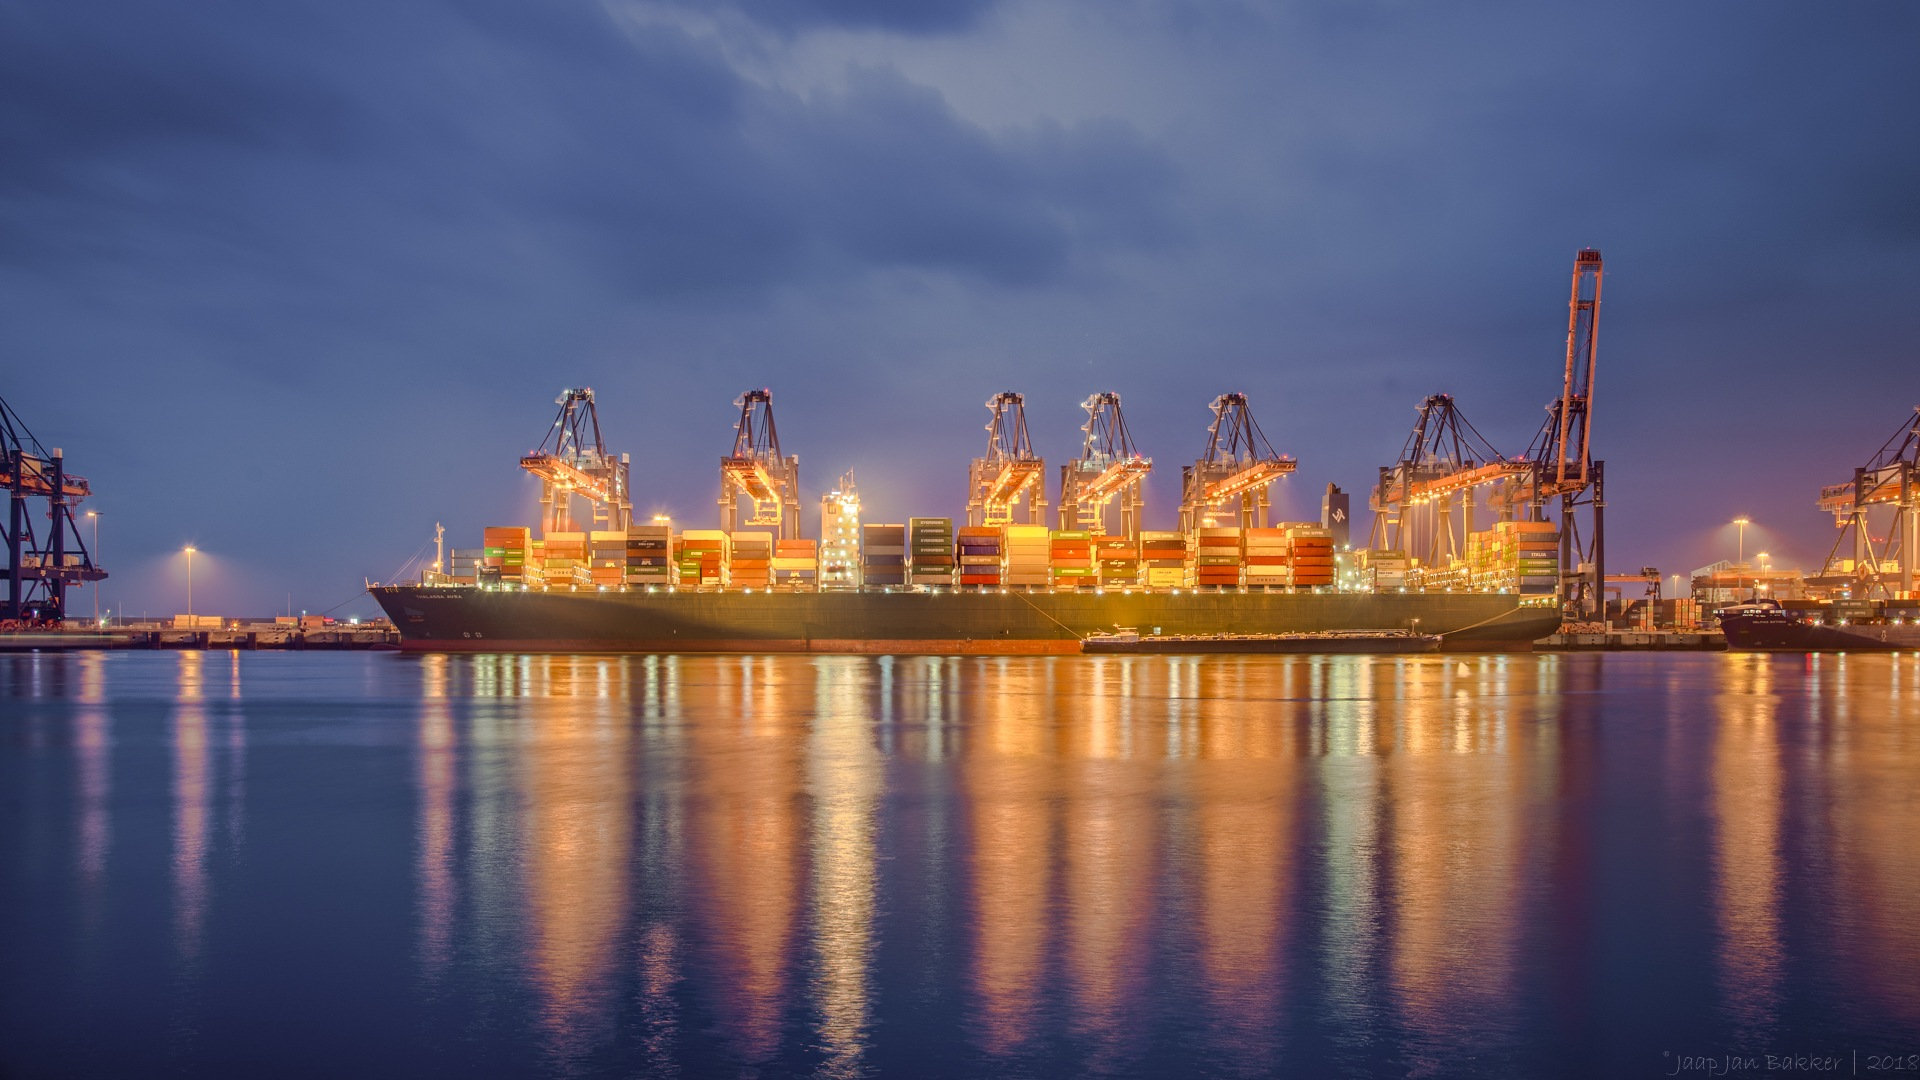 Ship  at container terminal. by Jaap Jan Bakker